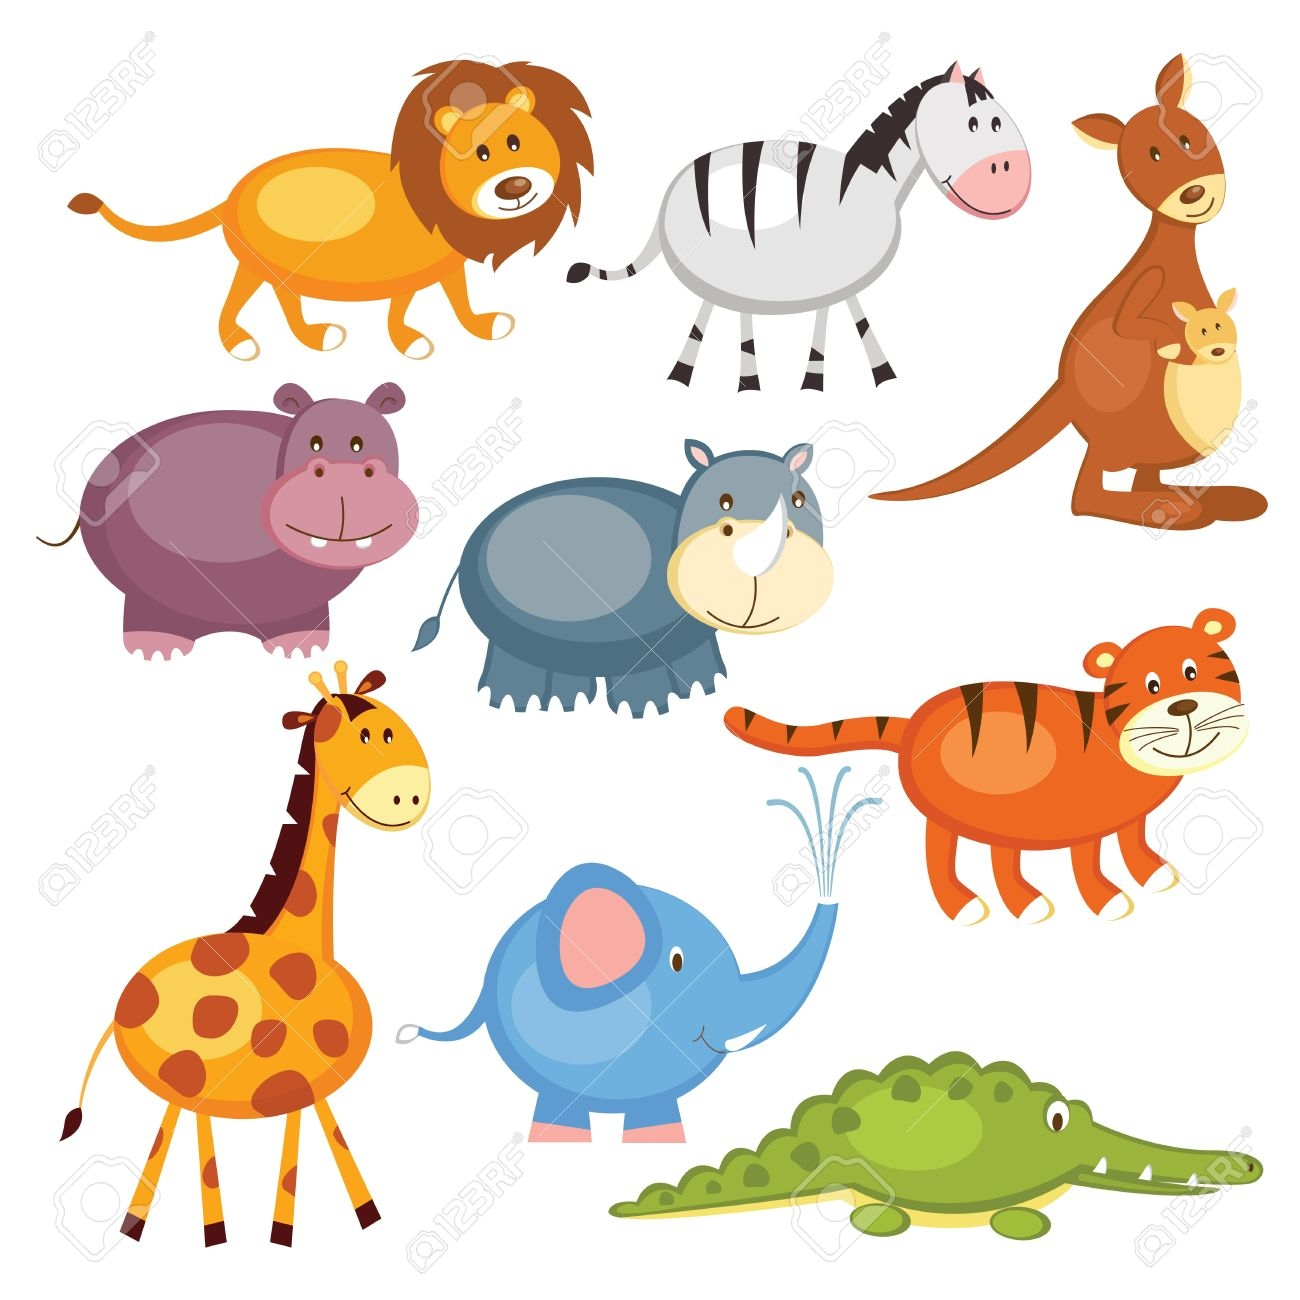 animals clipart for kids-#9